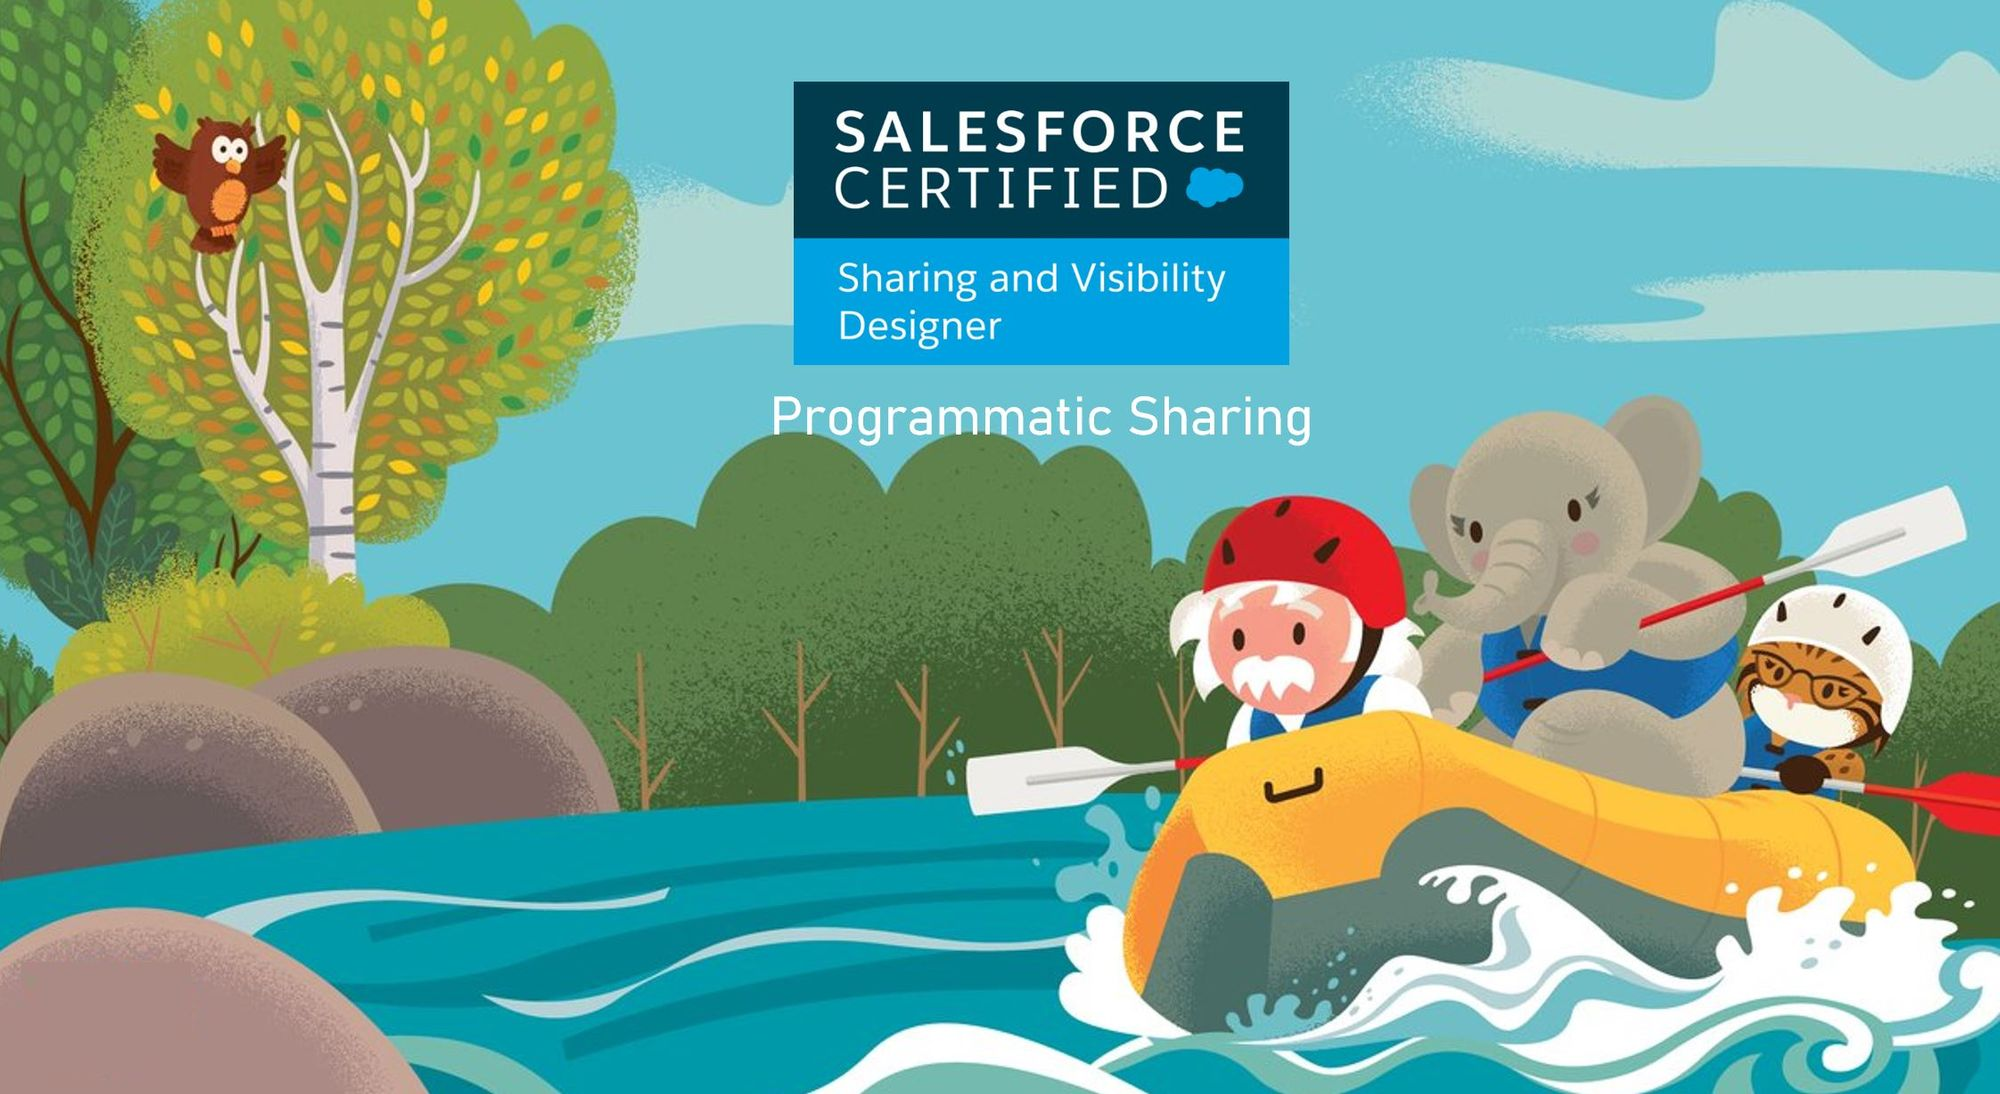 Salesforce Sharing and Visibility Designer Exam Preparation: Programmatic Sharing